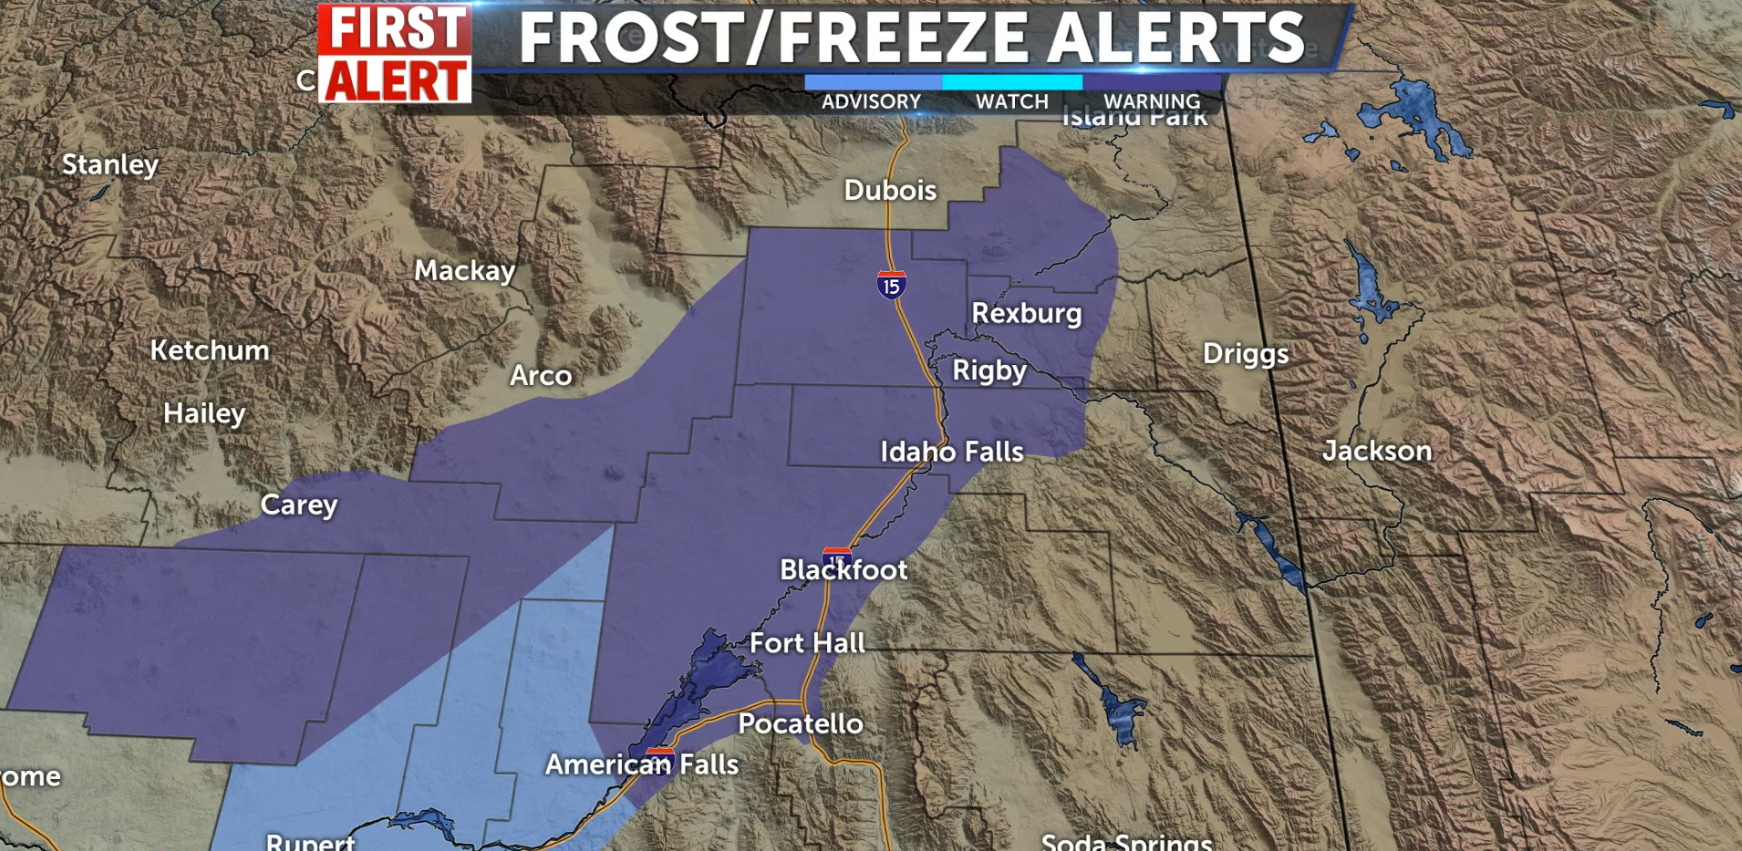 Freeze Warning for the Snake River Plain - Local News 8